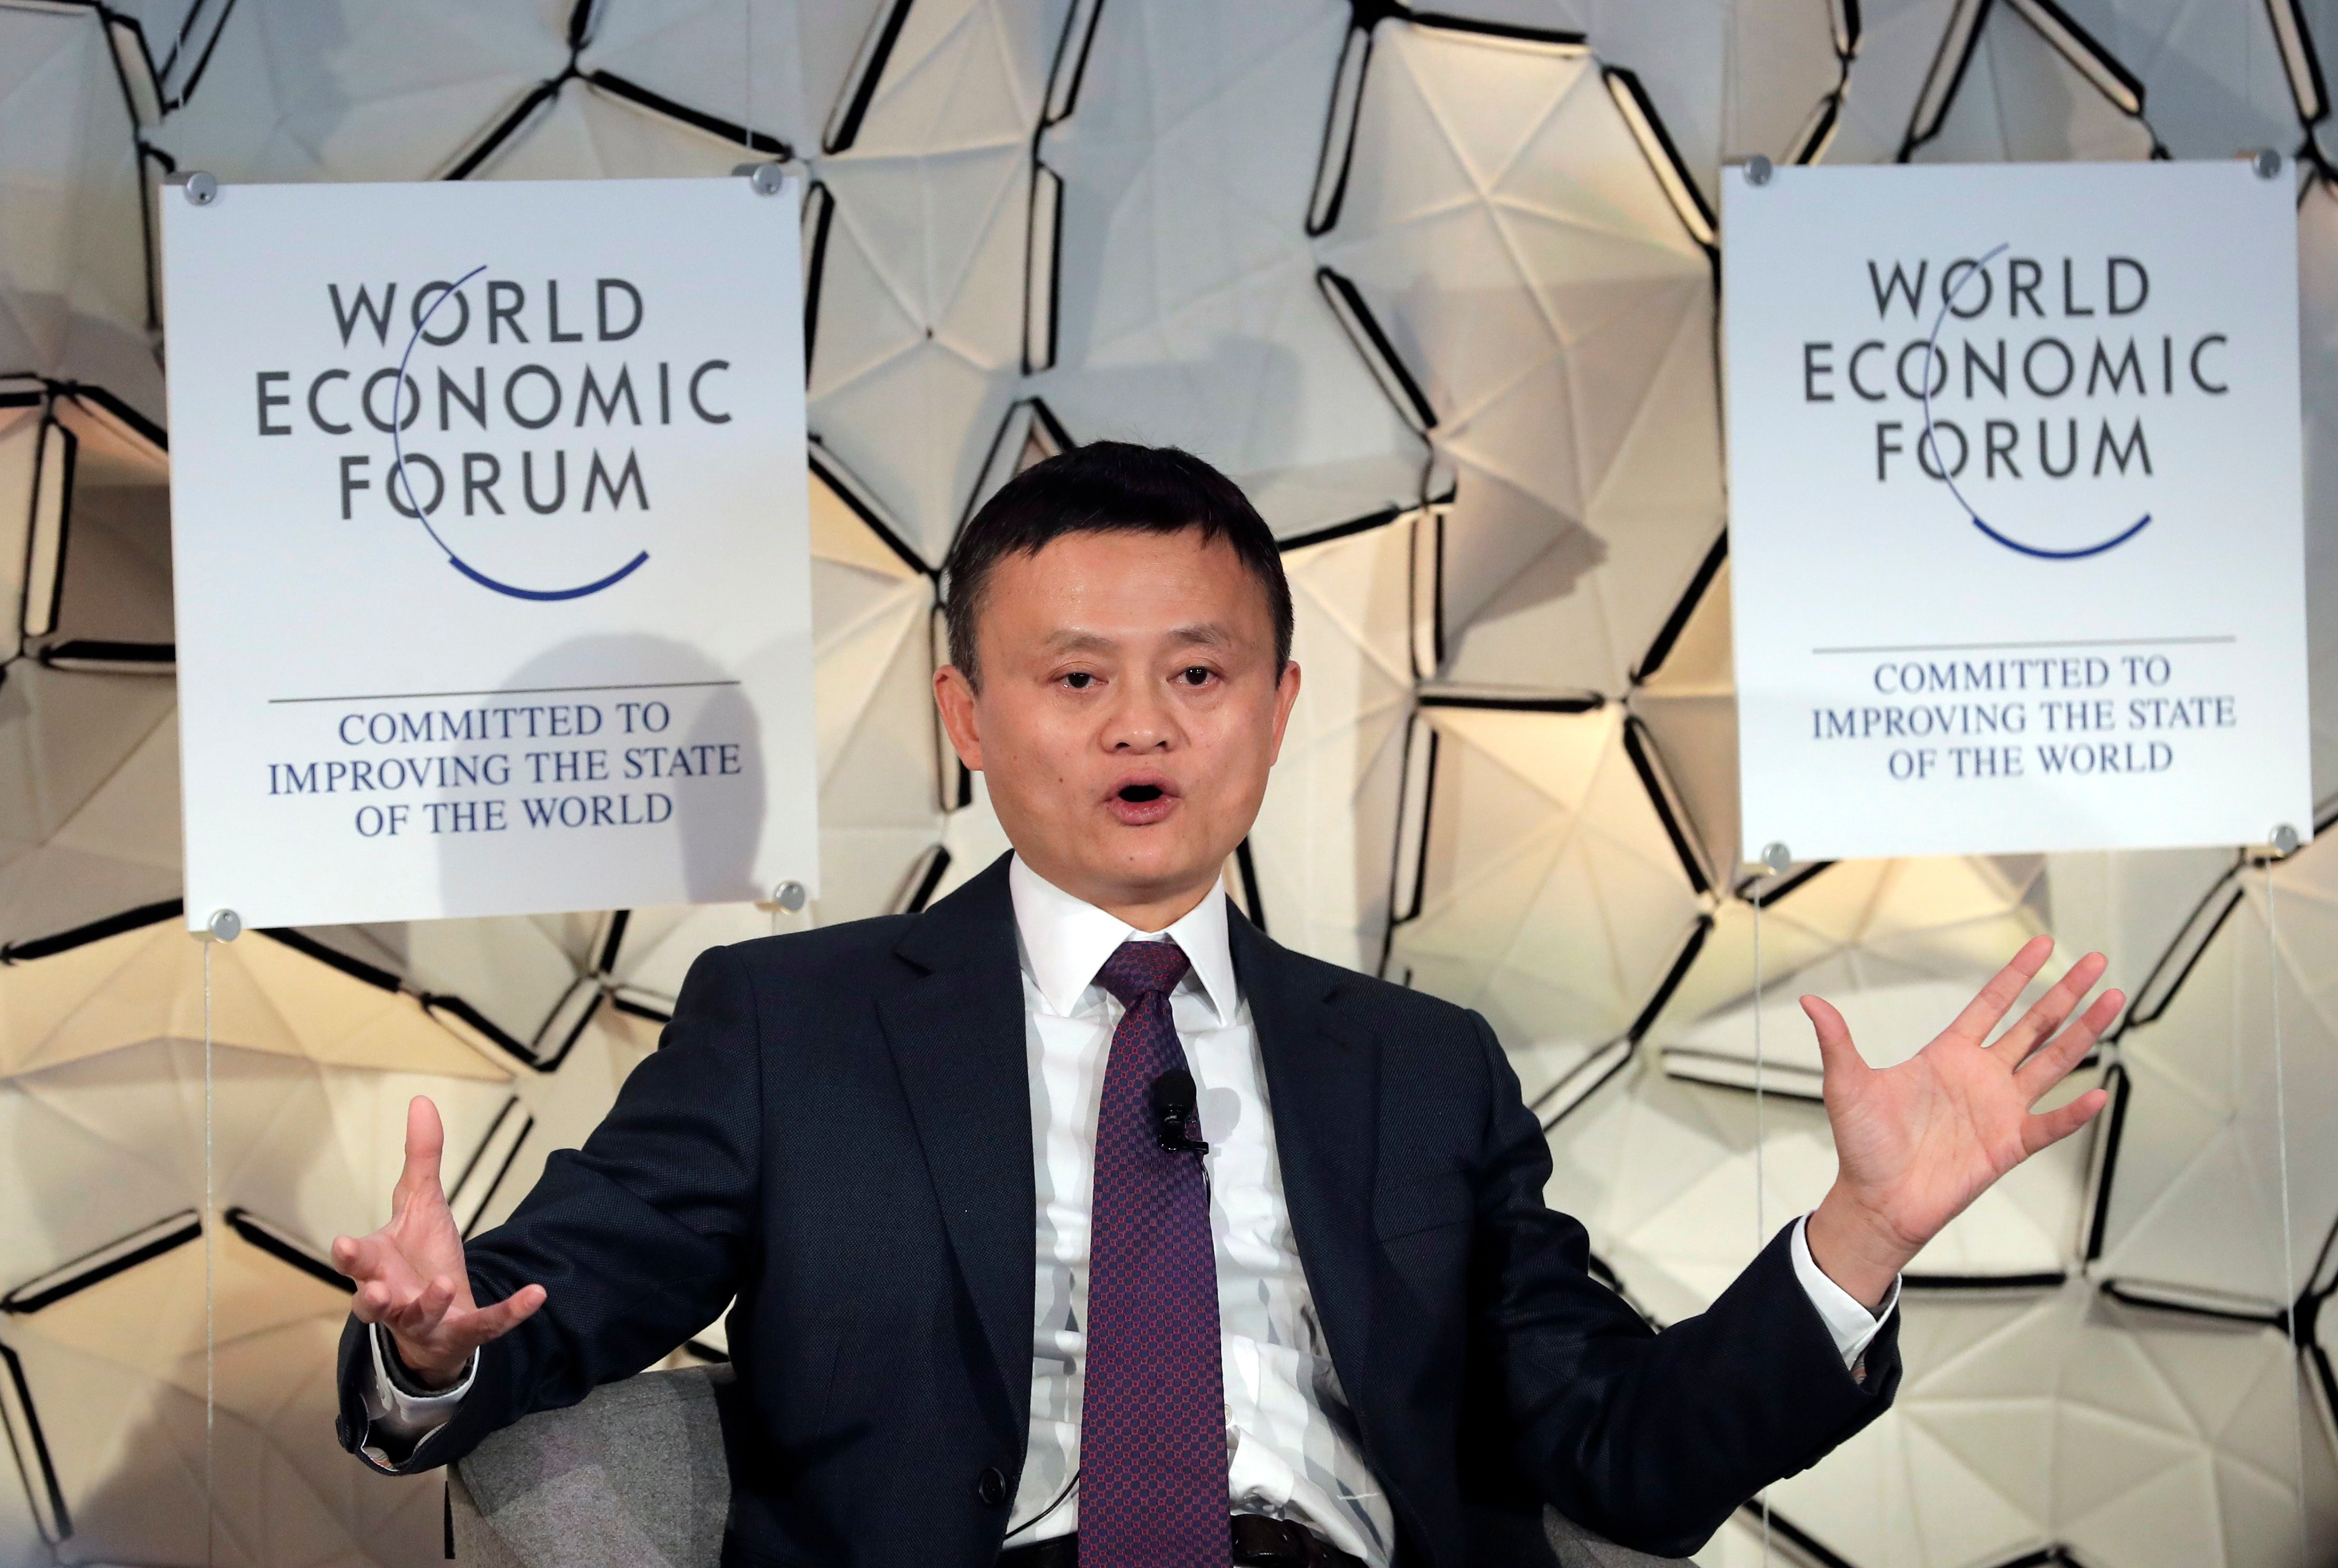 Jack Ma, CEO of Alibaba group, during a session at the annual meeting of the World Economic Forum in Davos, Switzerland